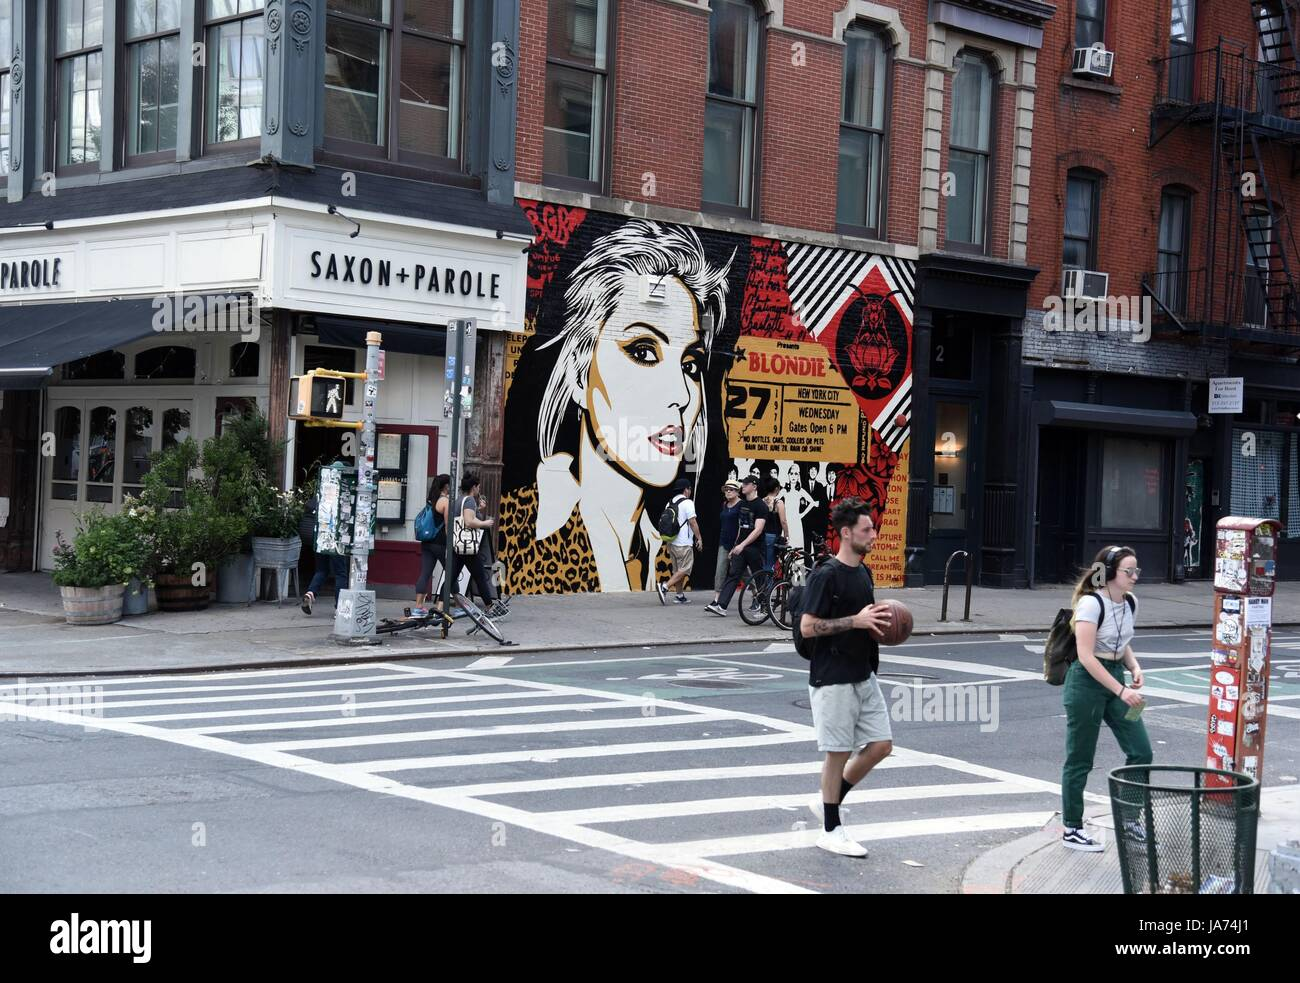 New York, USA. 24th Aug, 2017. Street Art out and about for Shepard Fairey Unveiled New Mural of Blondie's Debbie Harry, across from the old CBGB's at Bowery and Bleecker, New York, NY August 24, 2017. Credit: Everett Collection Inc/Alamy Live News Stock Photo